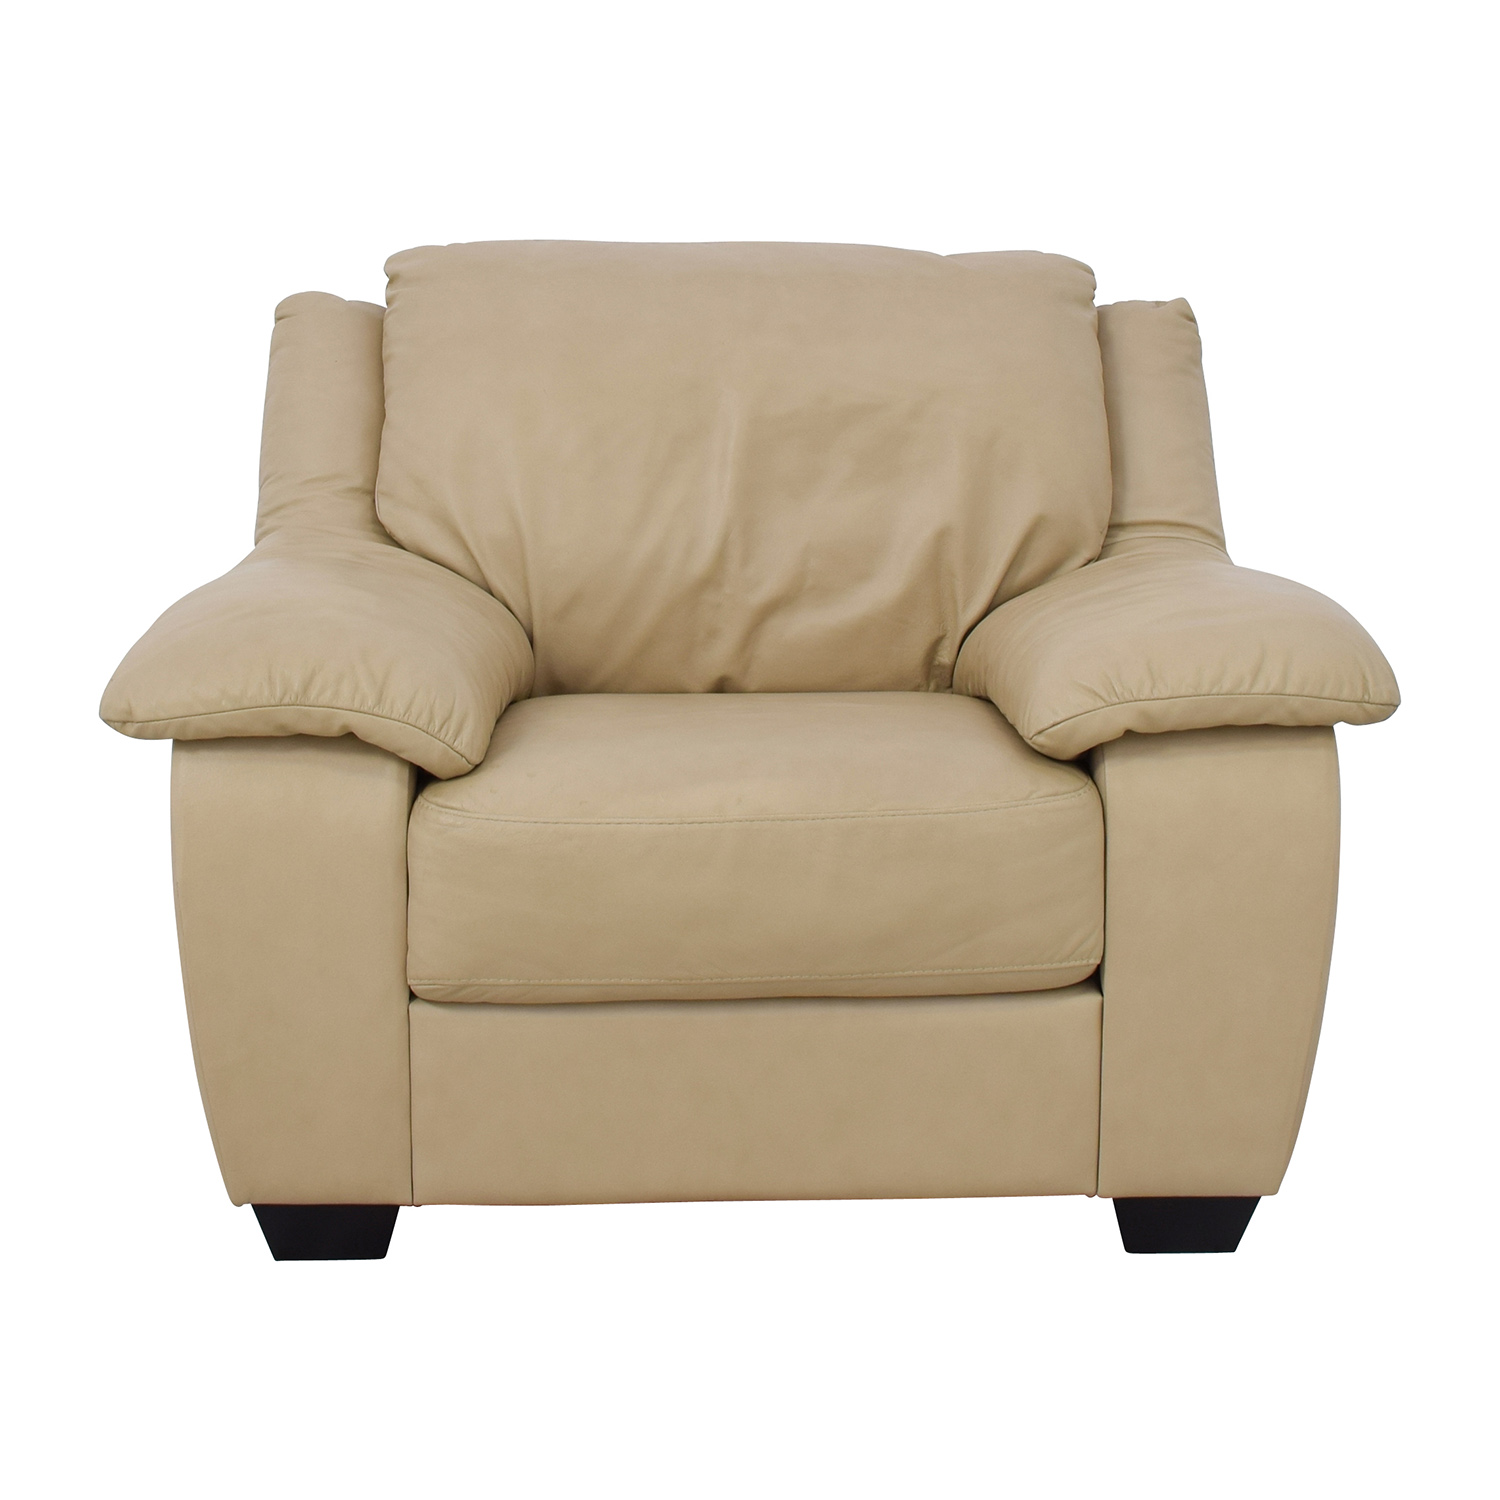 Natuzzi Italsofa Natuzzi Italsofa Beige Leather Club Chair on sale